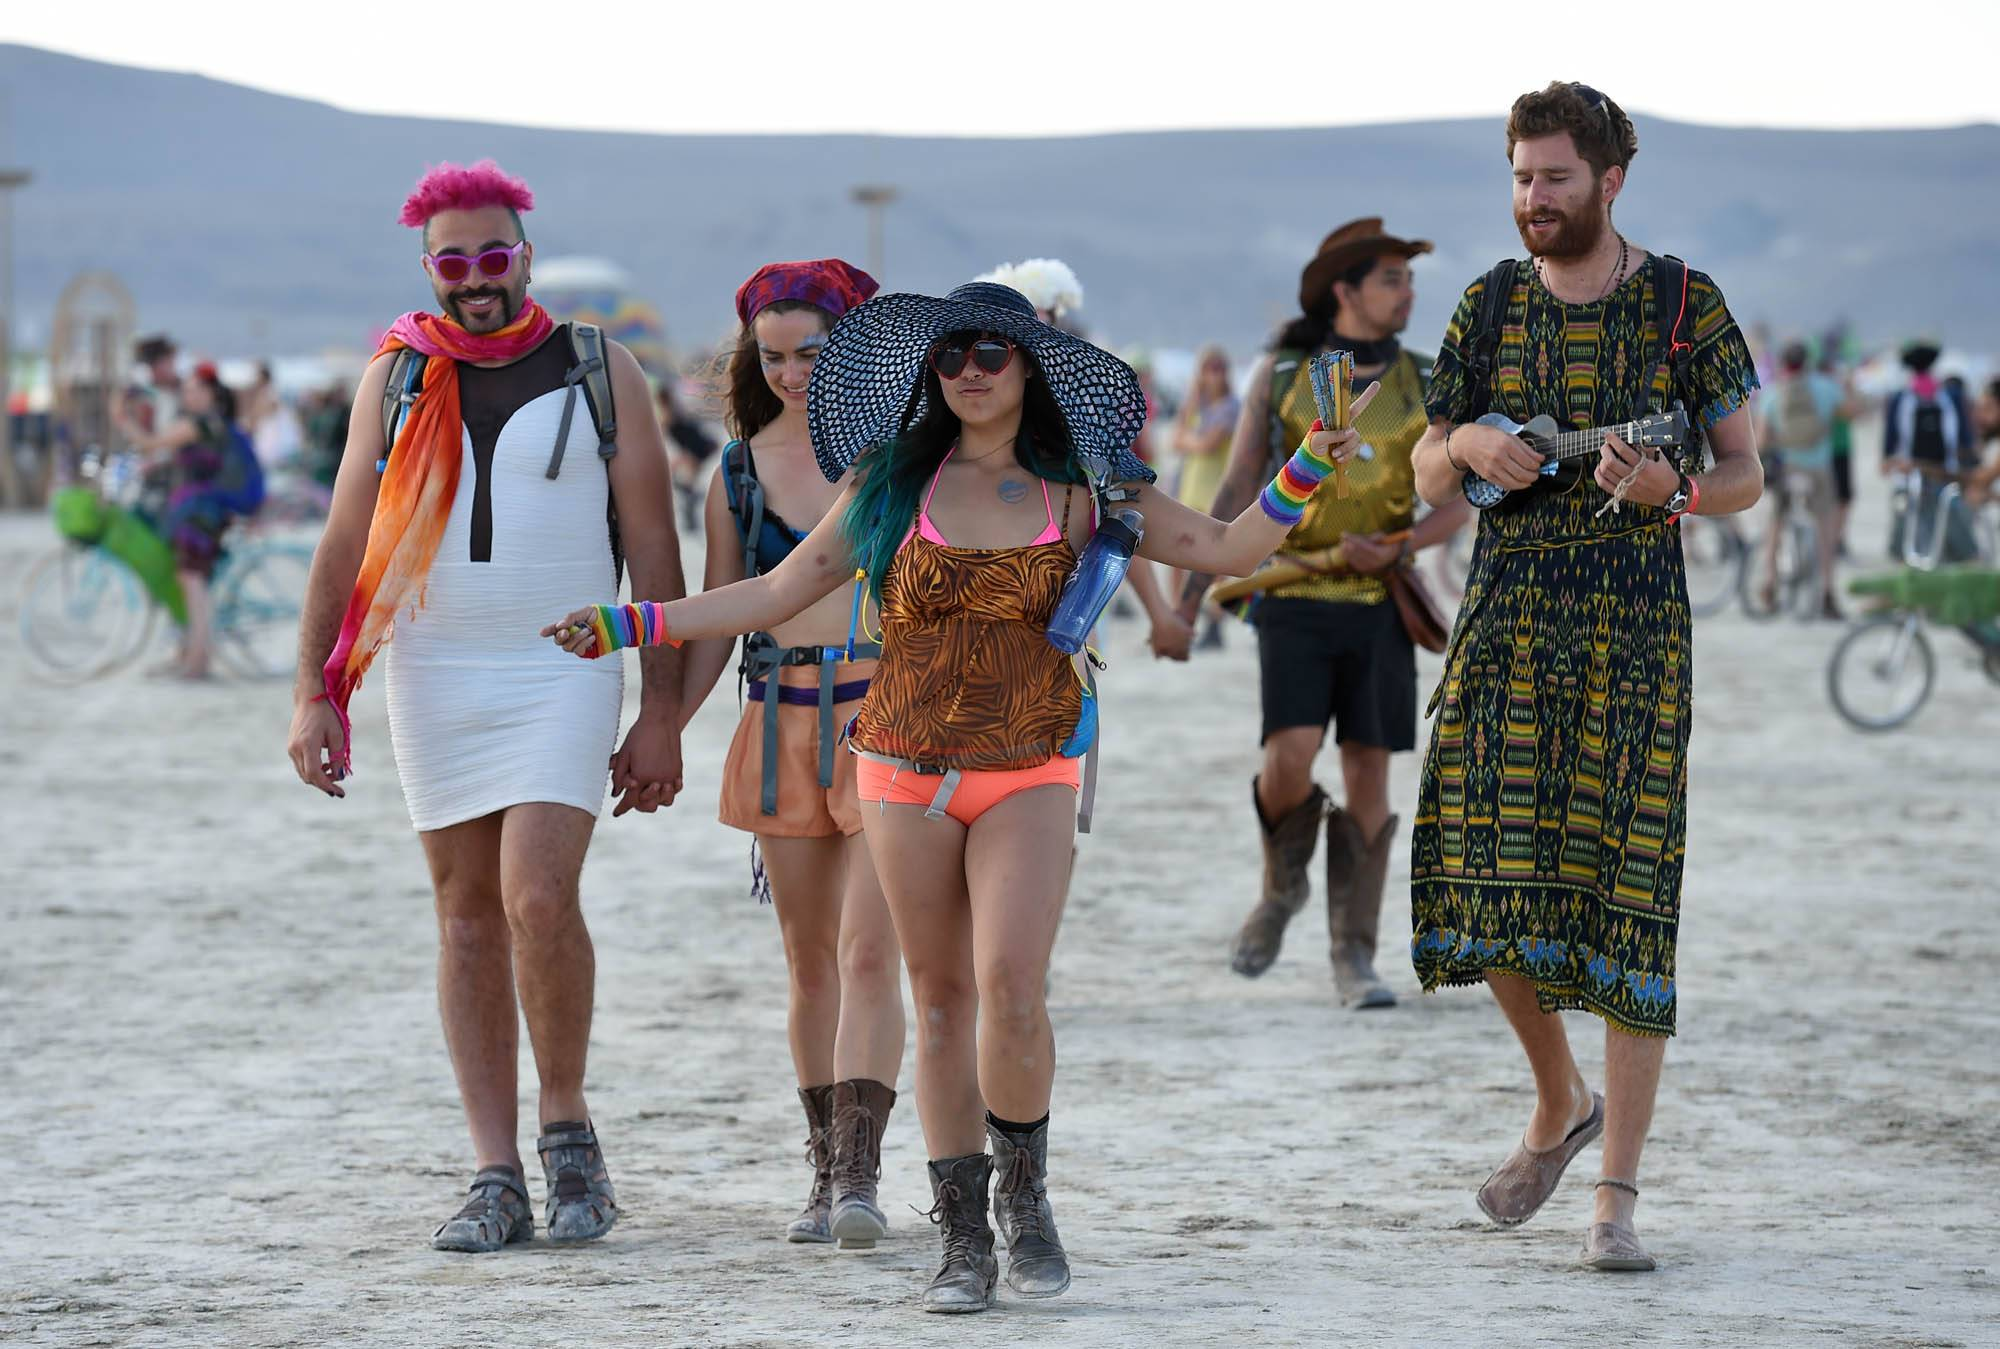 Burning Man participants, seen at this week's event in the Black Rock Desert of Gerlach, Nev., have a distinctive look.